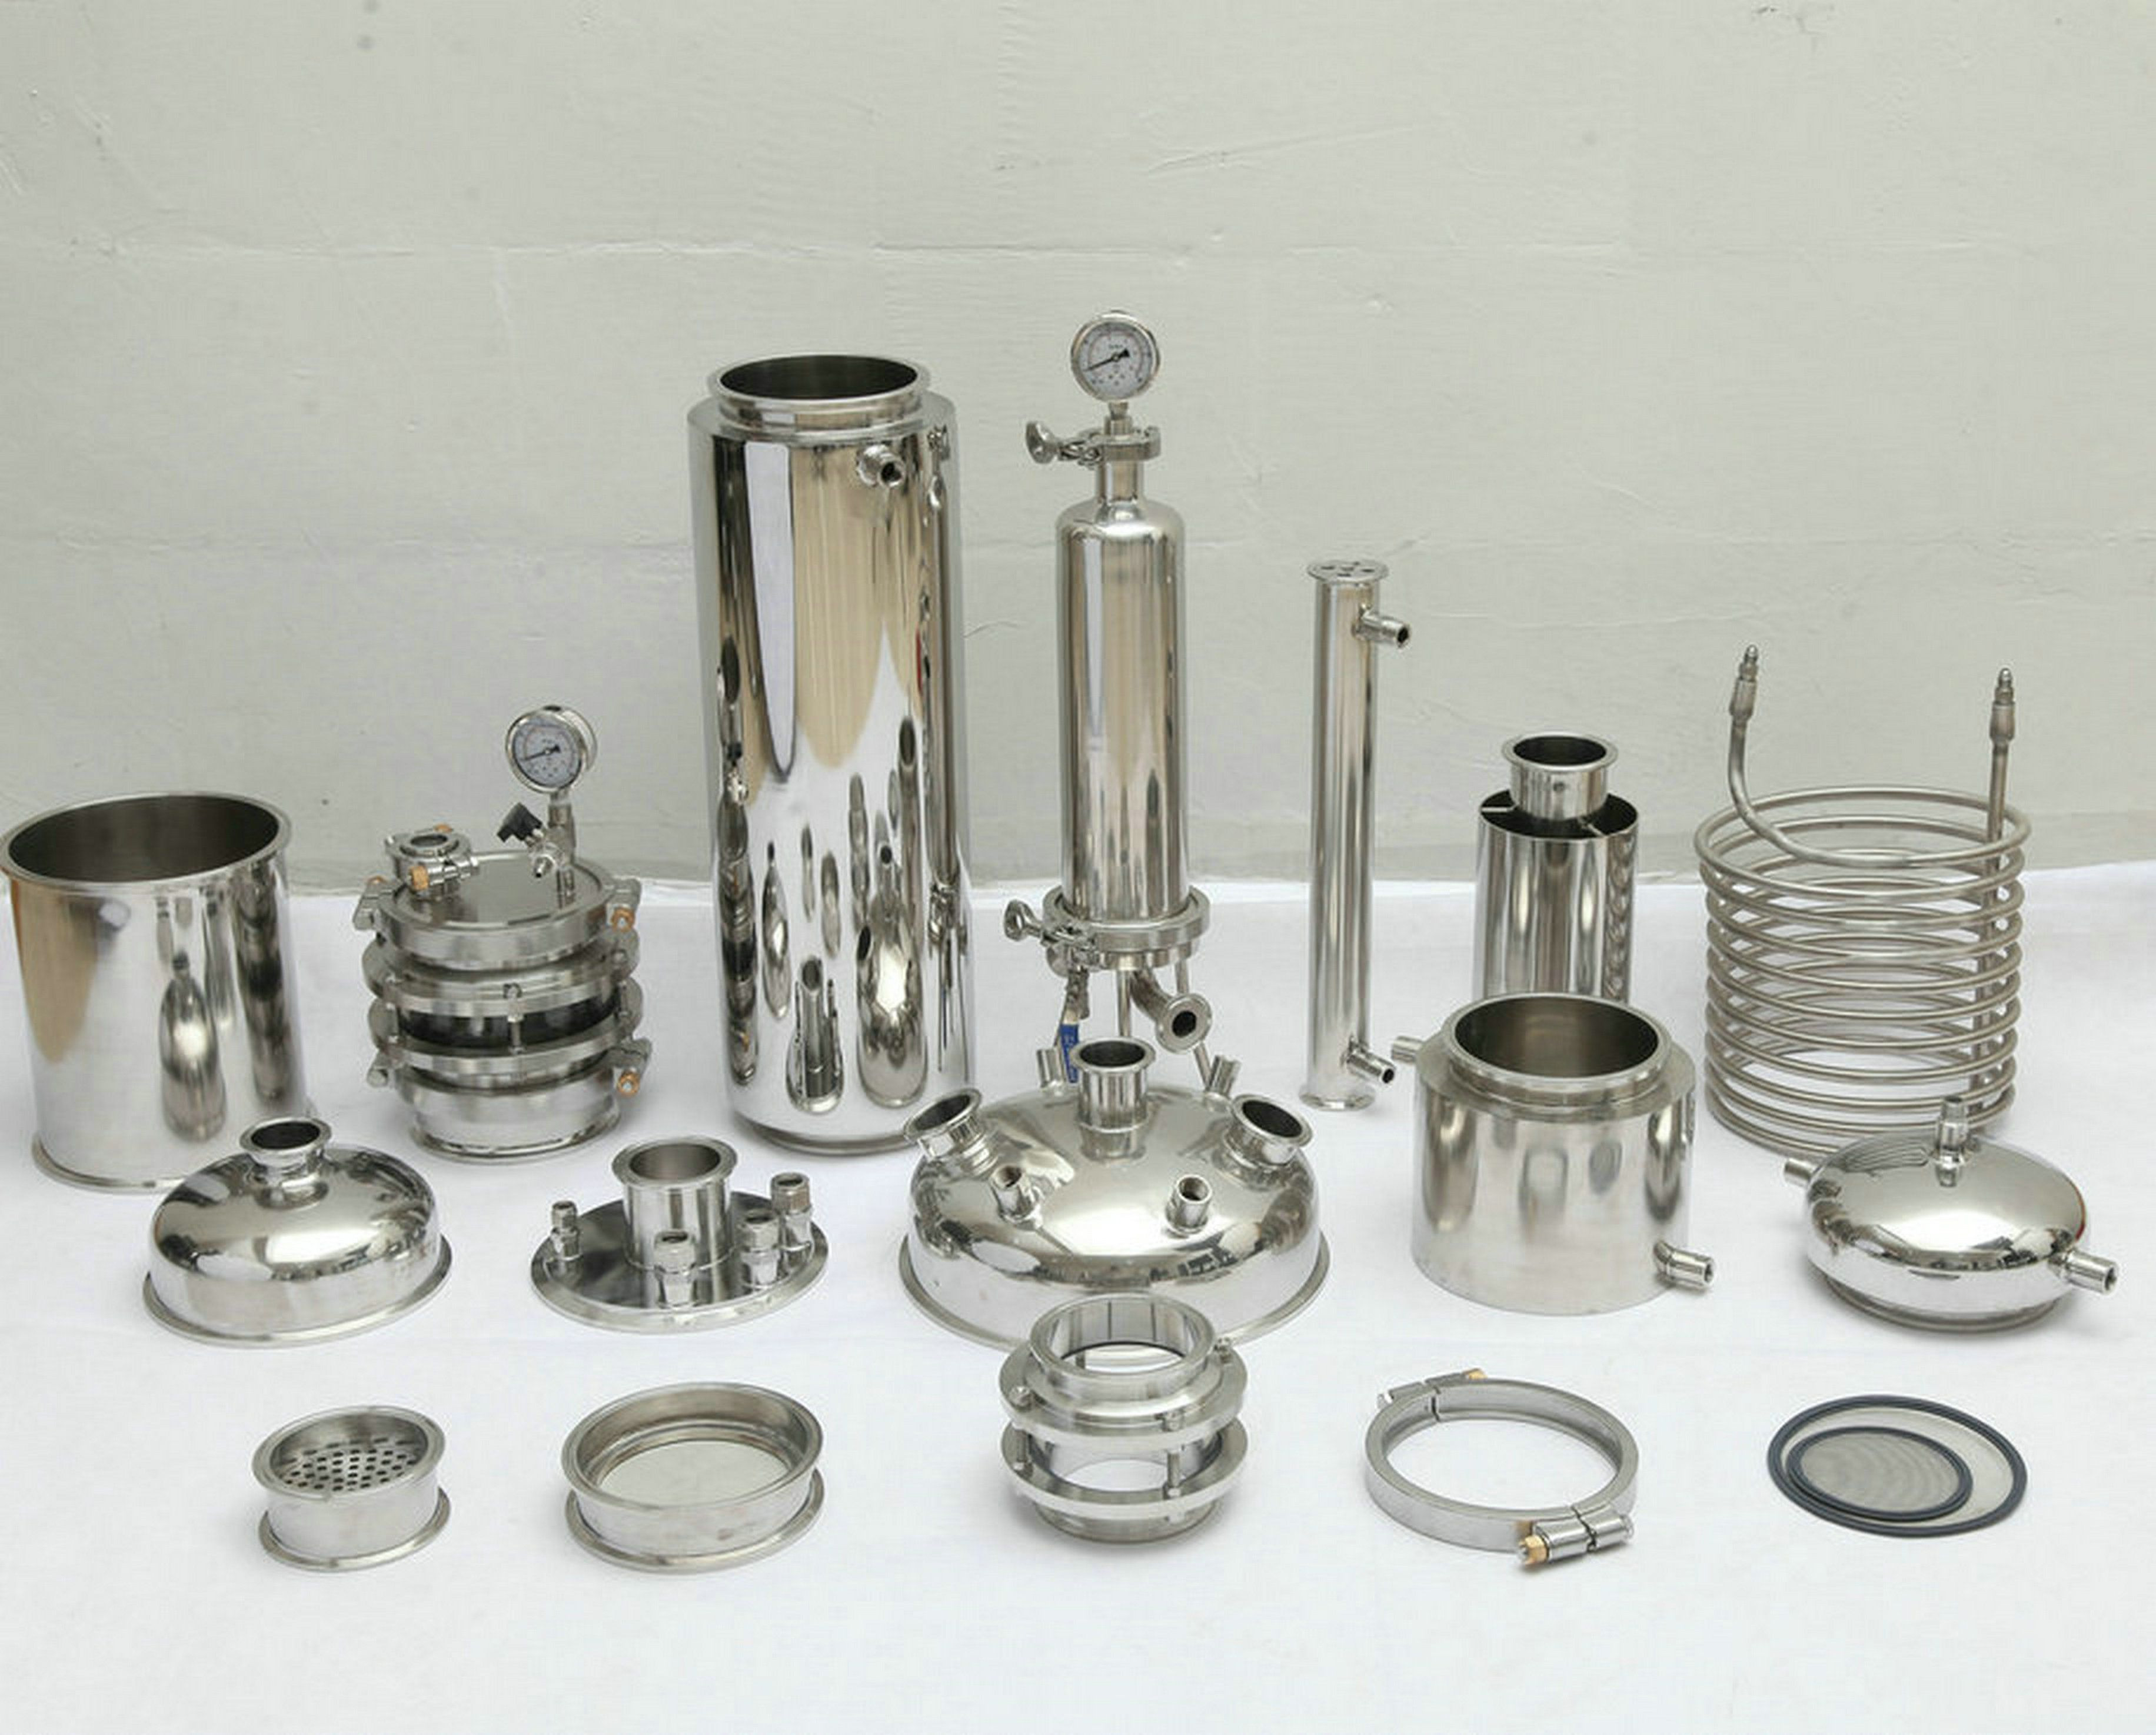 Stainless  steel   botanical extractor essential oil   BHO   extractor  parts  fitting